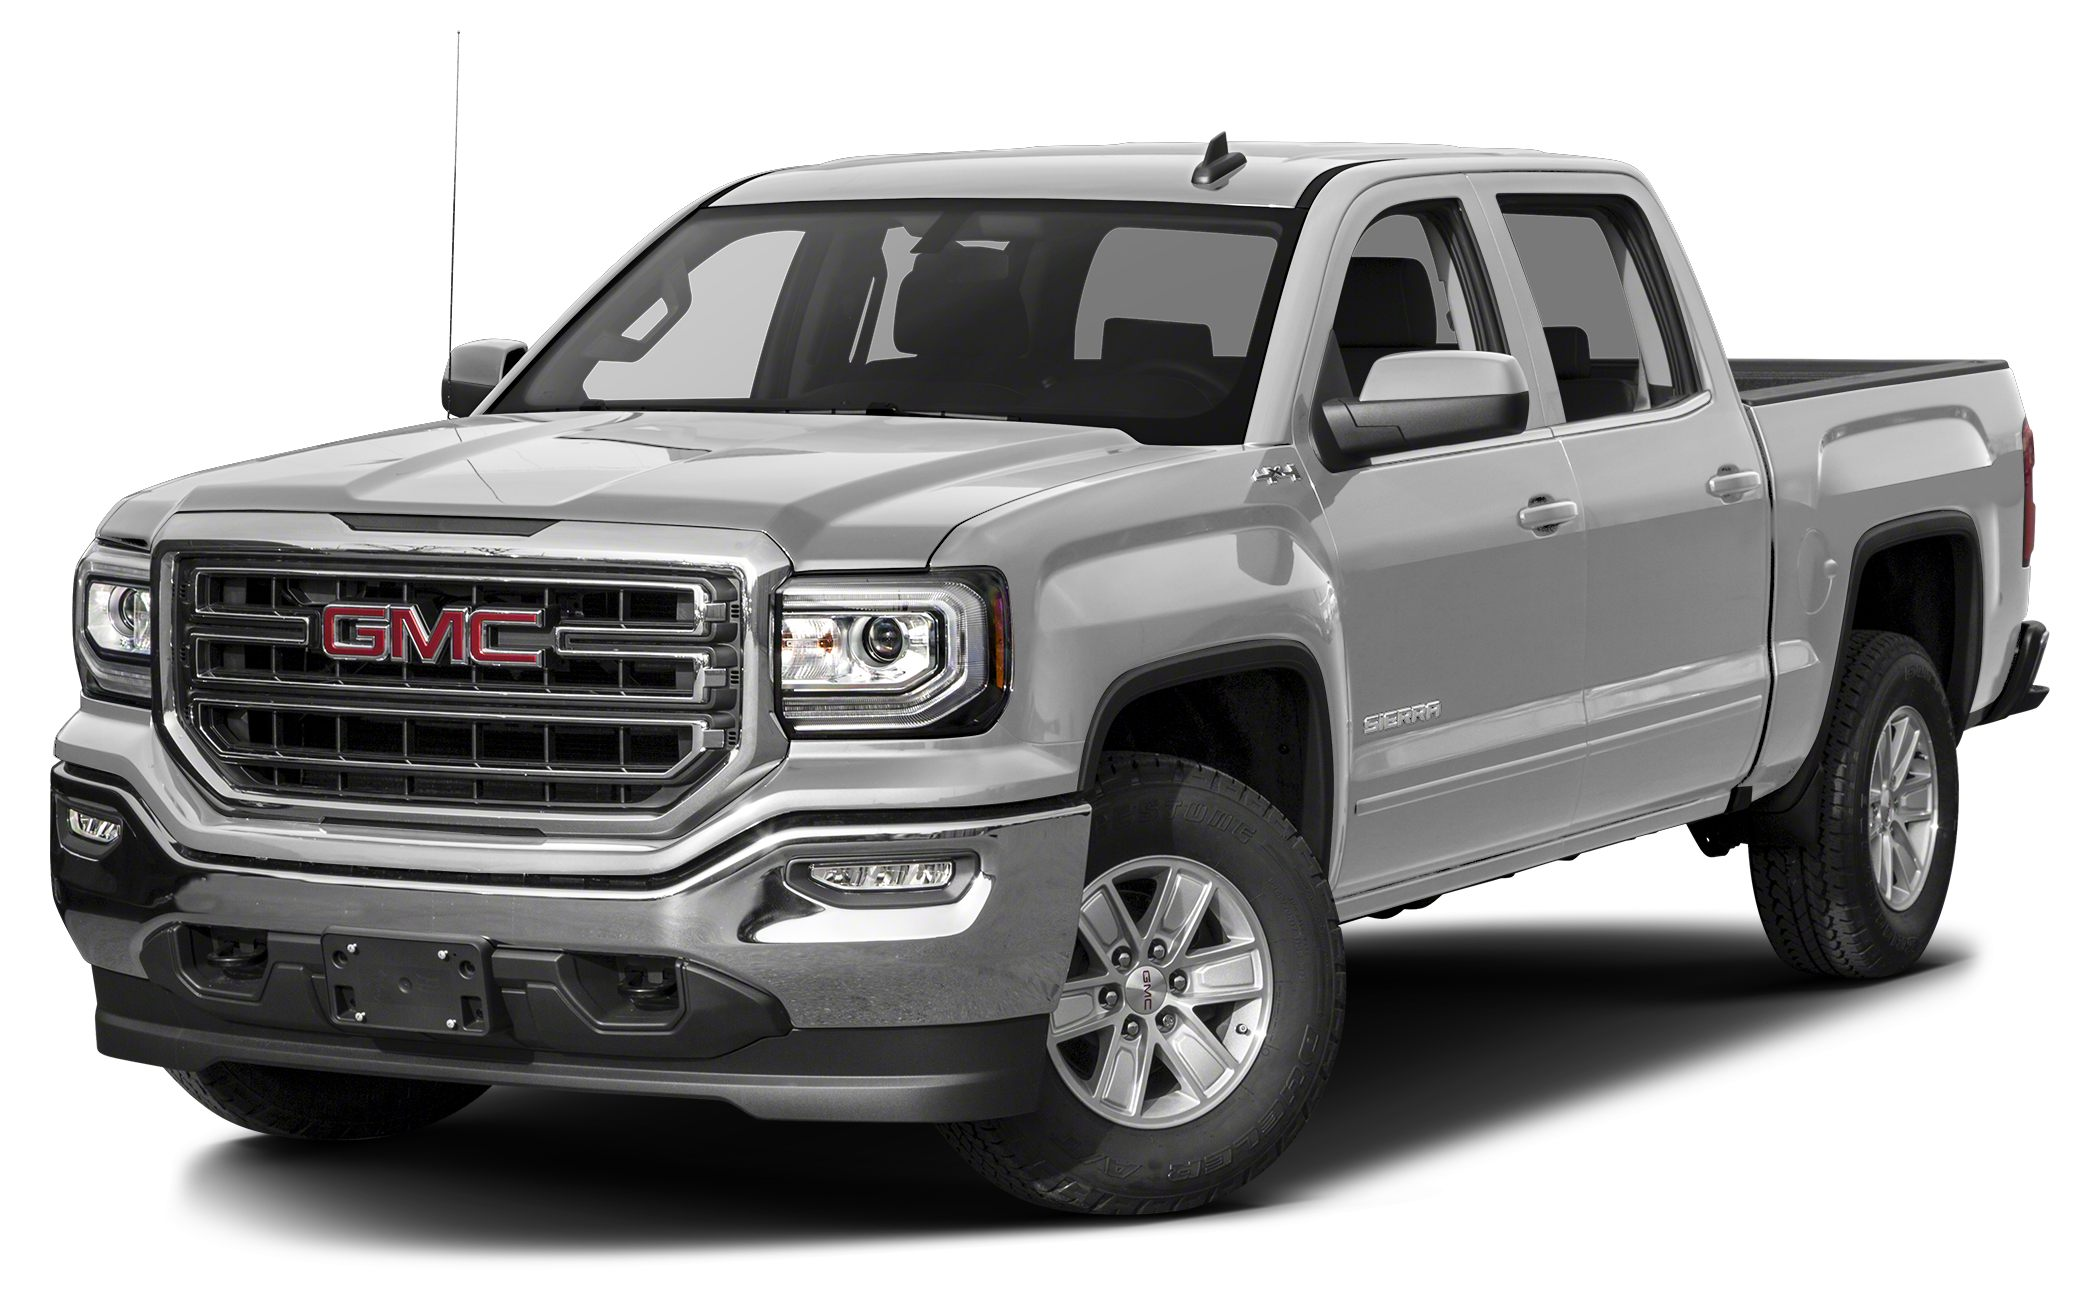 2018 GMC Sierra 1500 SLE Get ready to go for a ride in this 2018 GMC Sierra 1500 SLE which comes